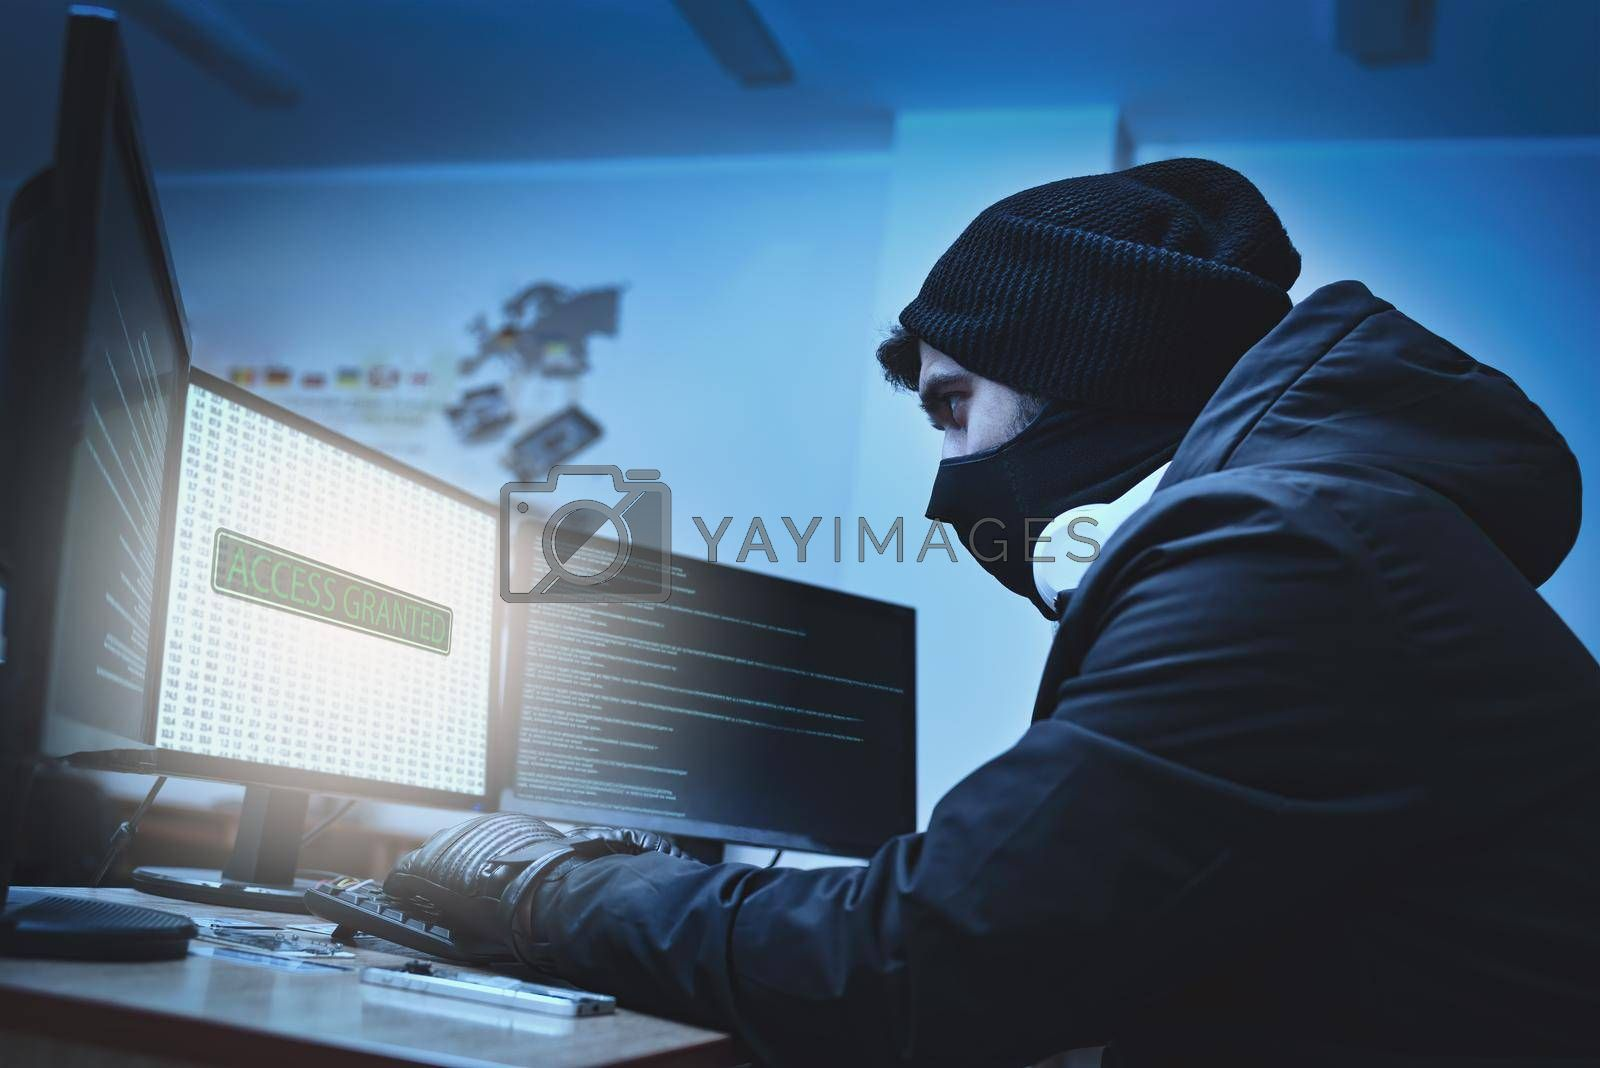 Royalty free image of Side view of a hacker hacking into corporate data servers from his underground hideout. The place has a dark atmosphere, lots of displays by Nickstock